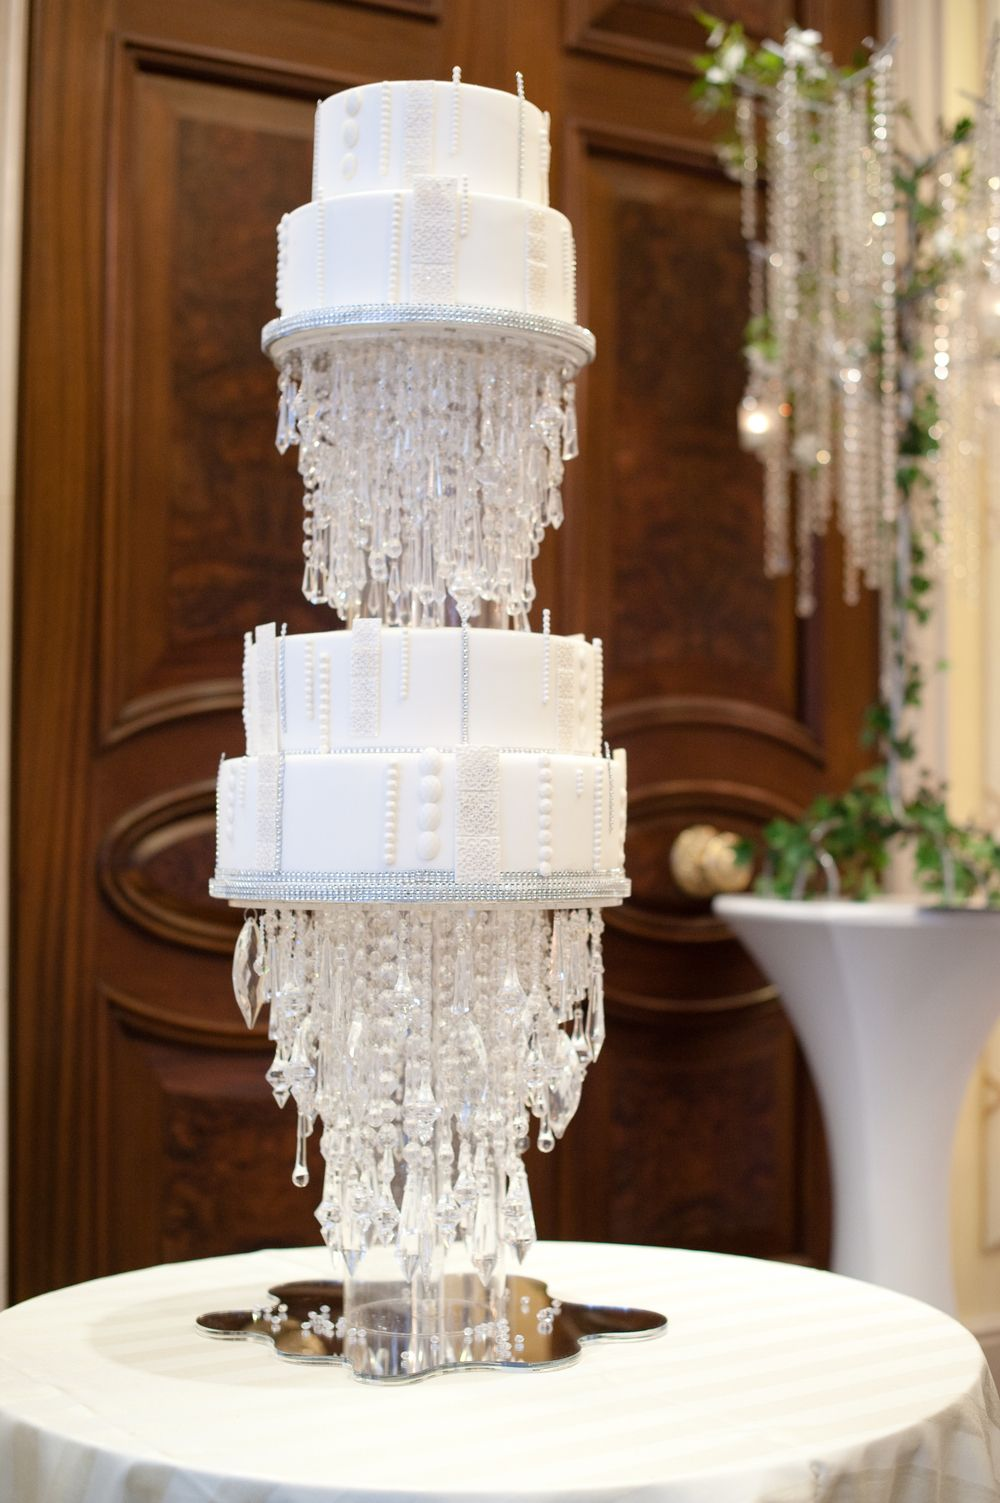 Outrageous and crazy wedding cakes pictures delish arubaitofo Image collections